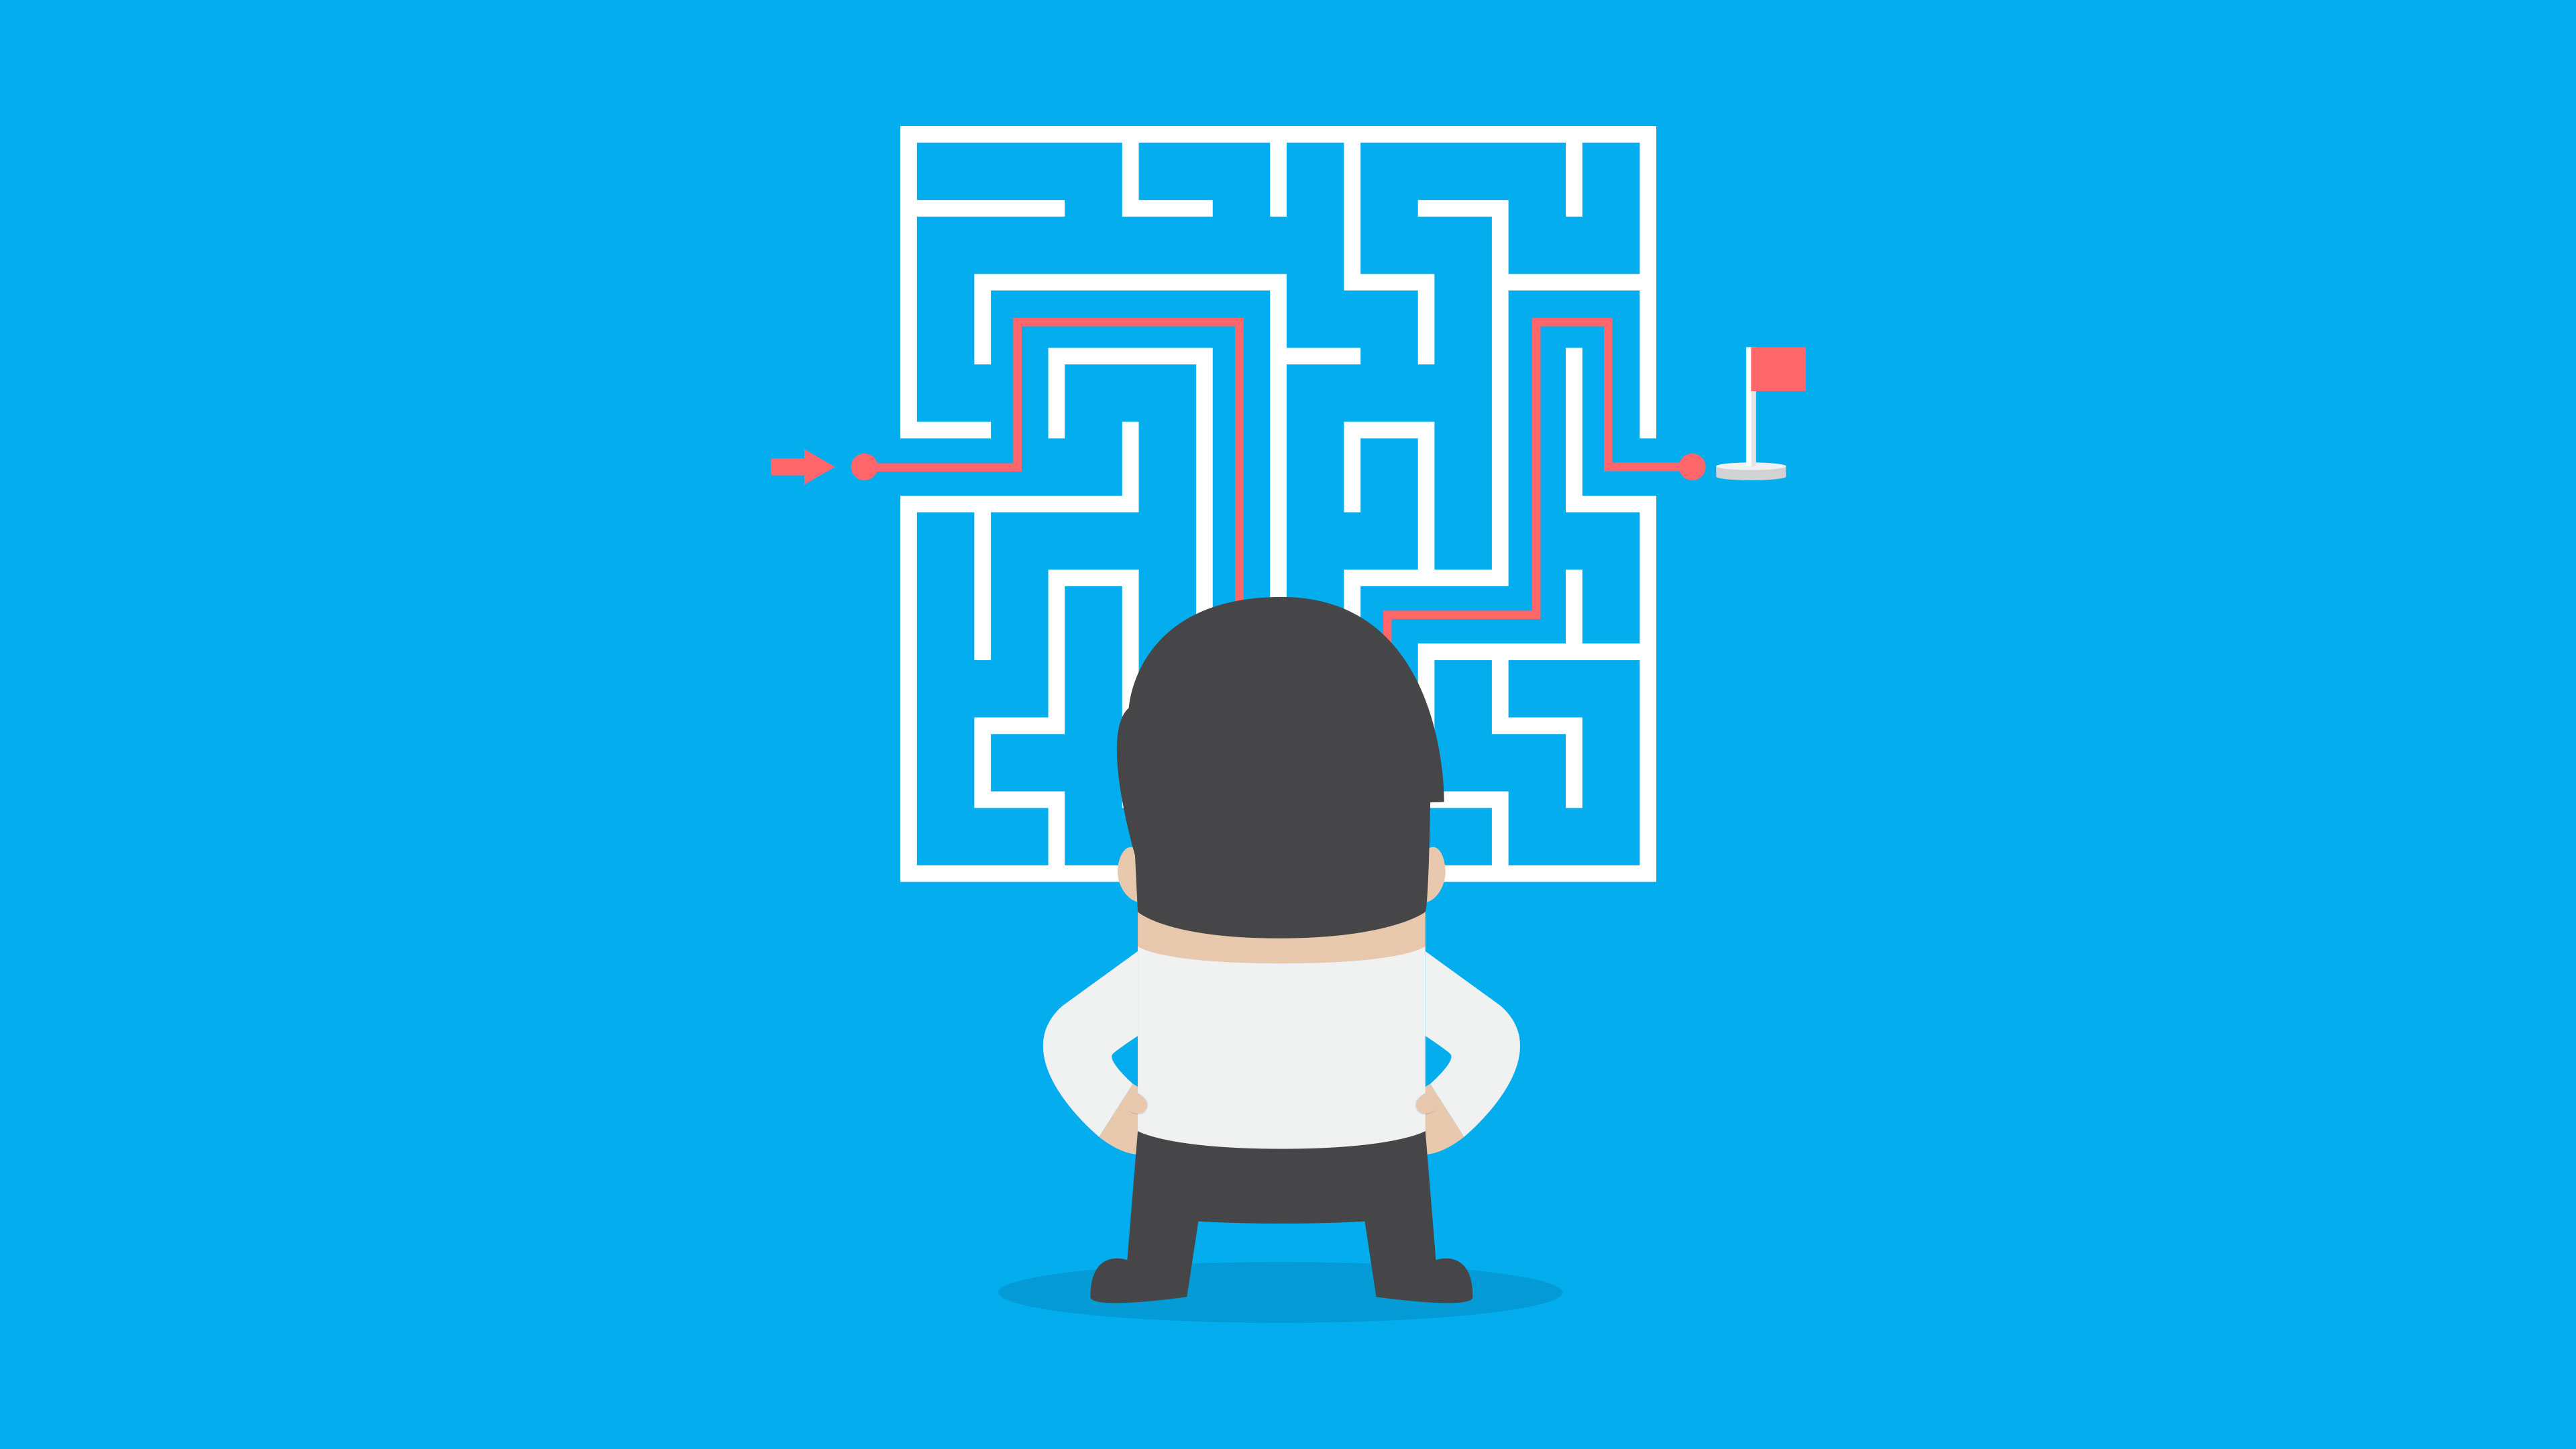 Improve Your Problem Solving: 7 Skills to Tackle Issues - ProjectManager.com